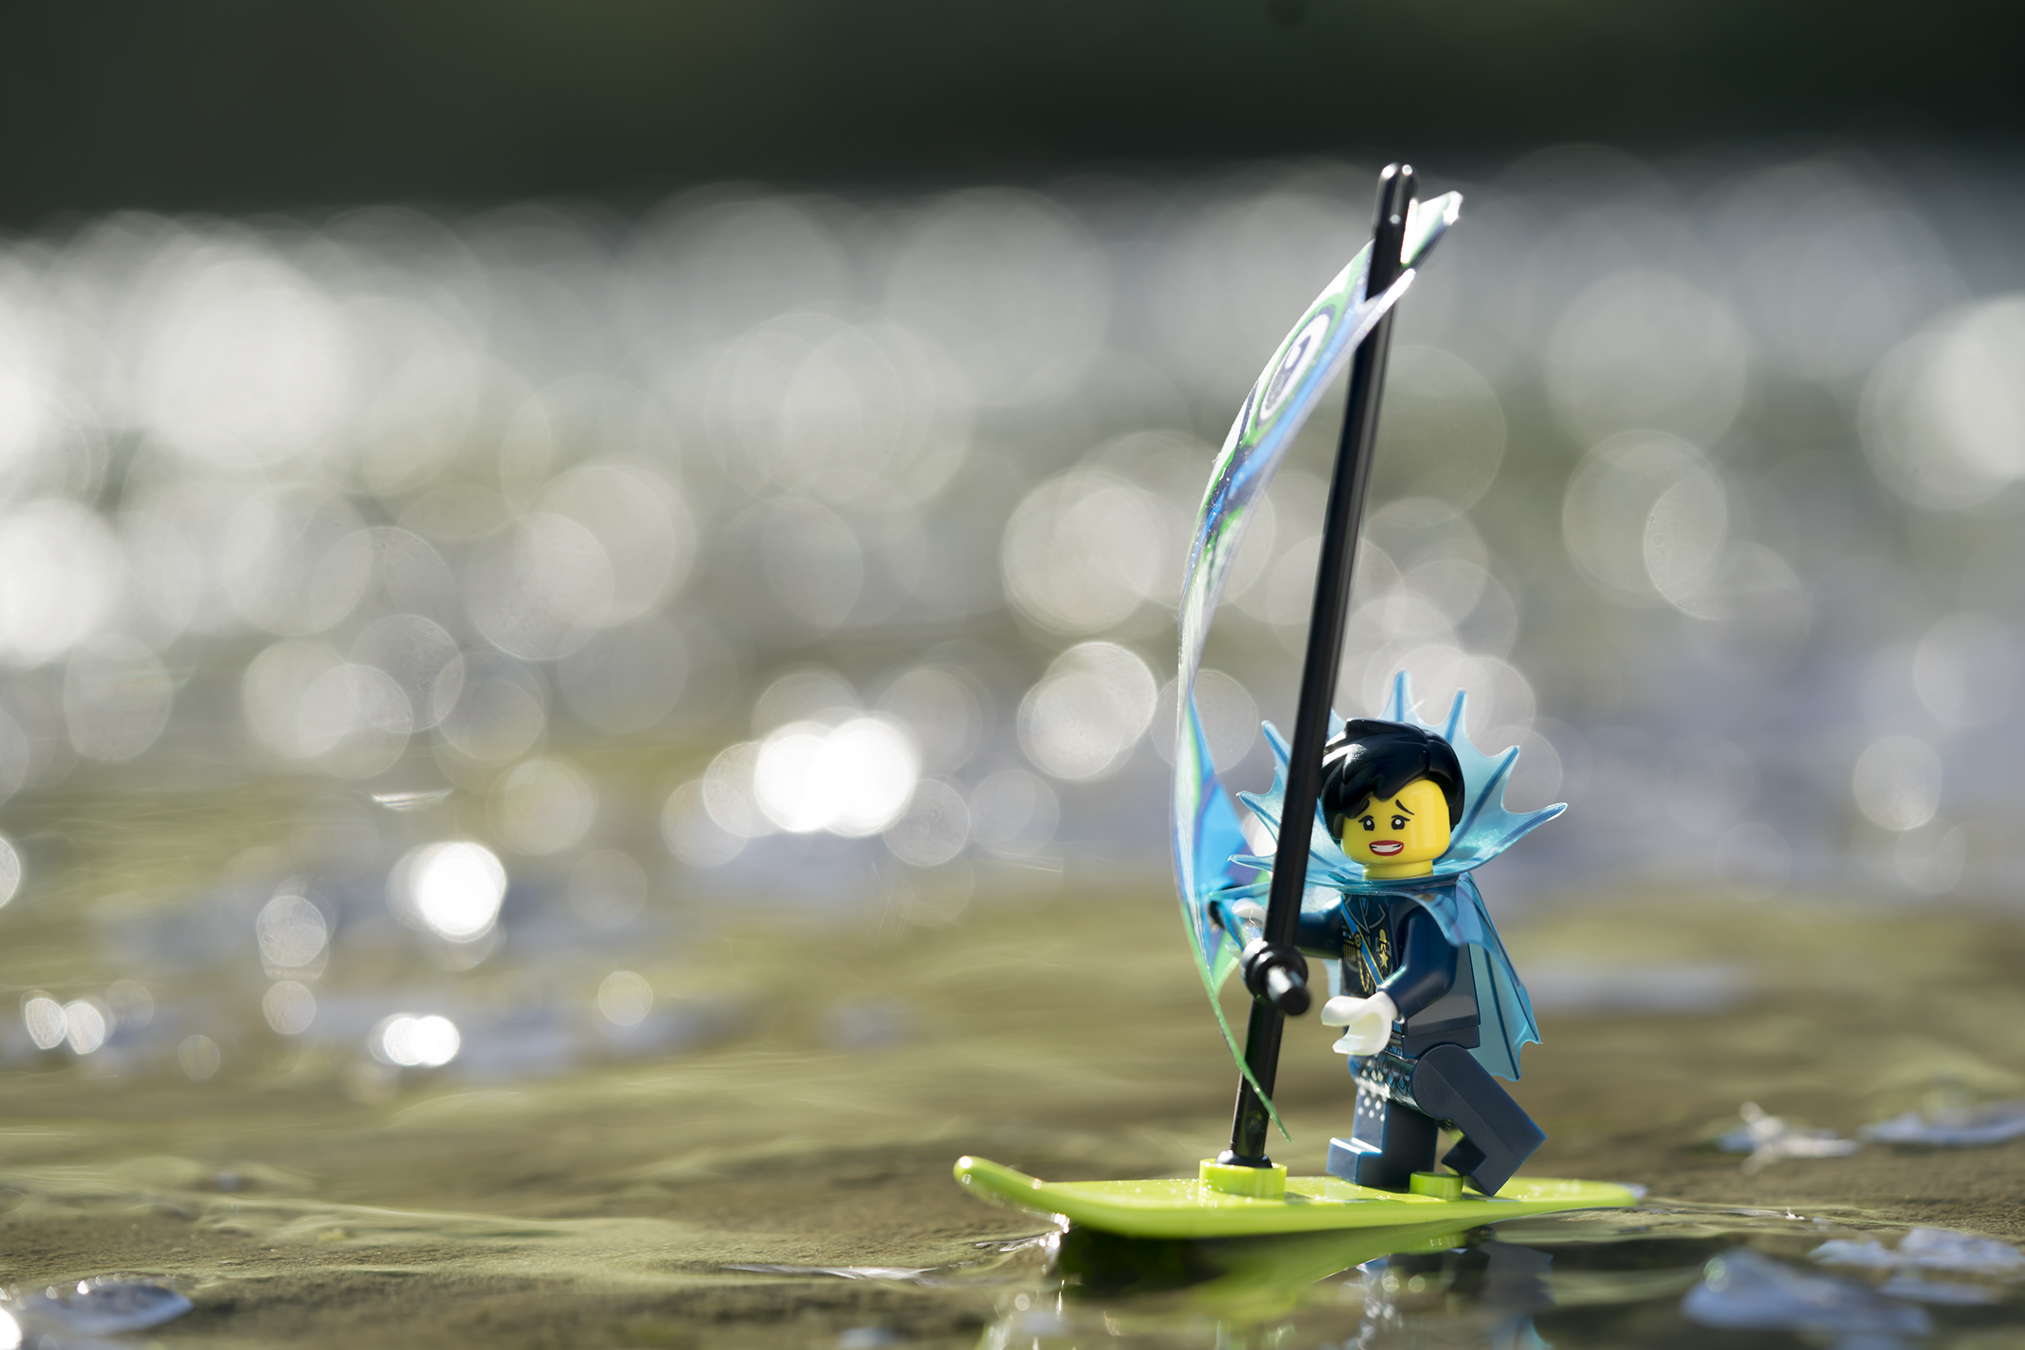 The Basics – Photographing toys in water